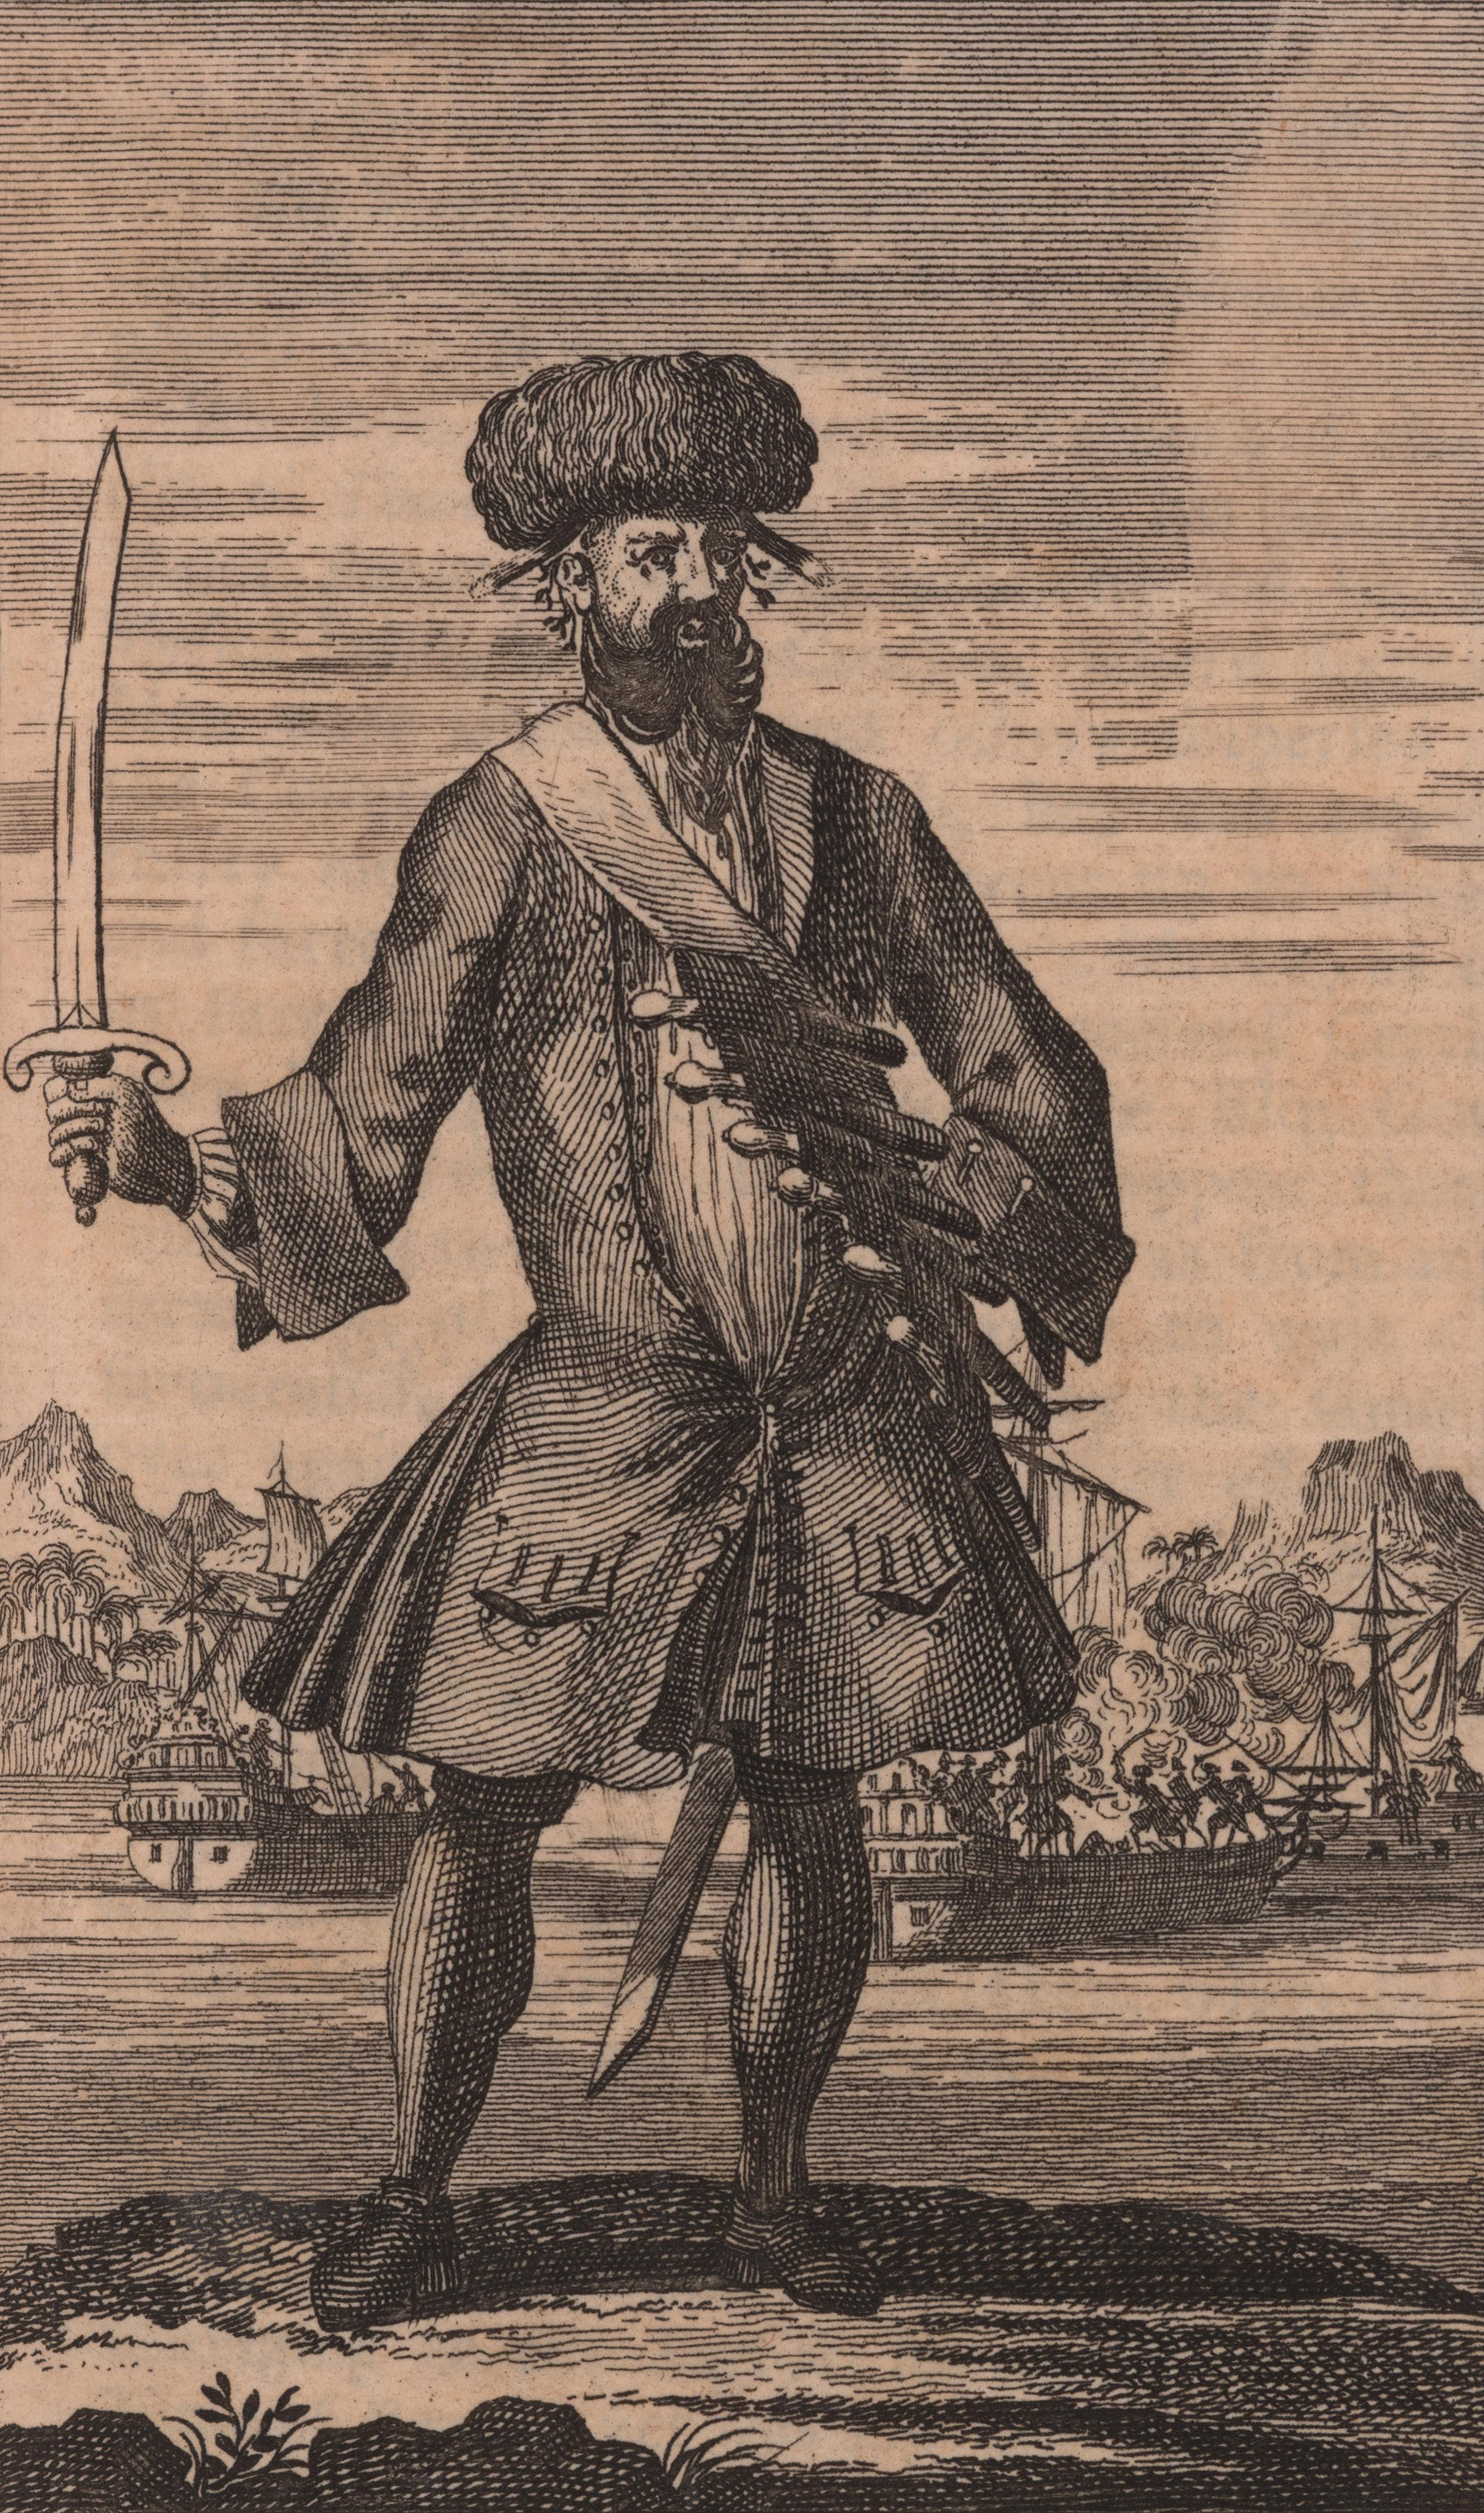 General_History_of_the_Pyrates_-_Blackbeard_the_Pirate_(1724).jpg